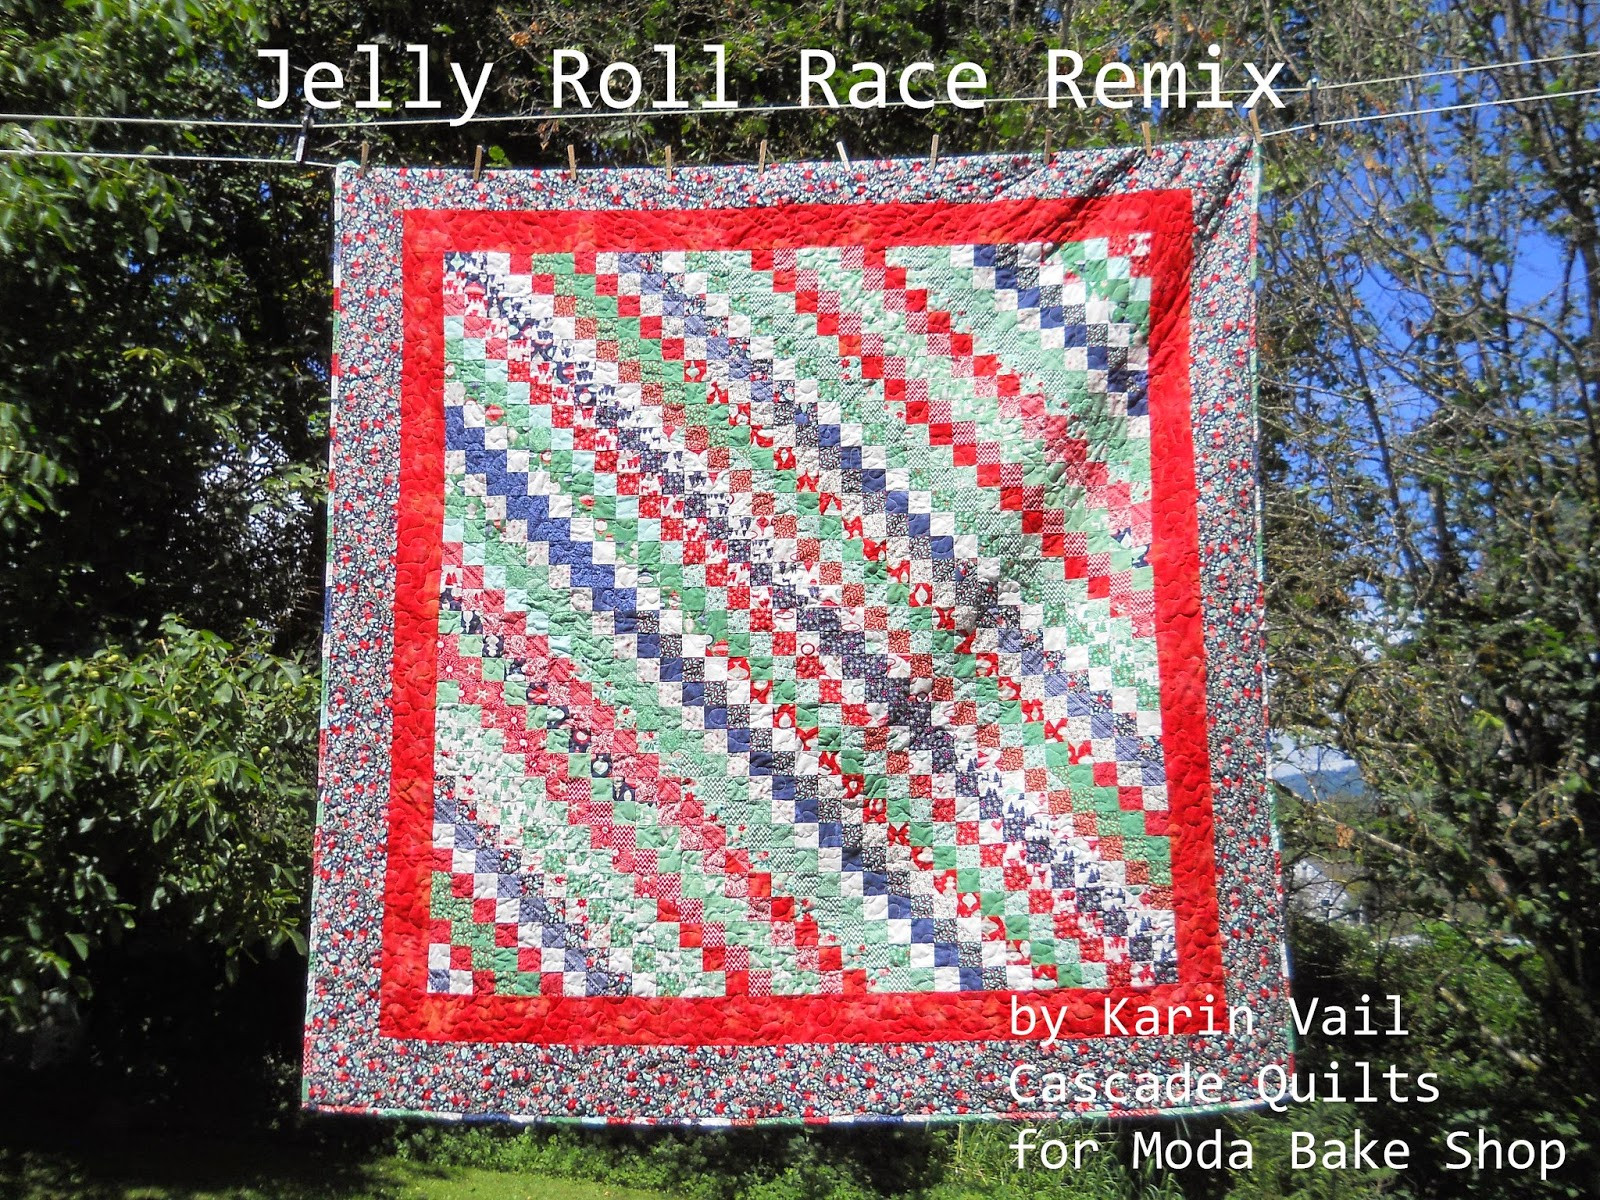 Jelly roll race 1600 experts? I need your help!